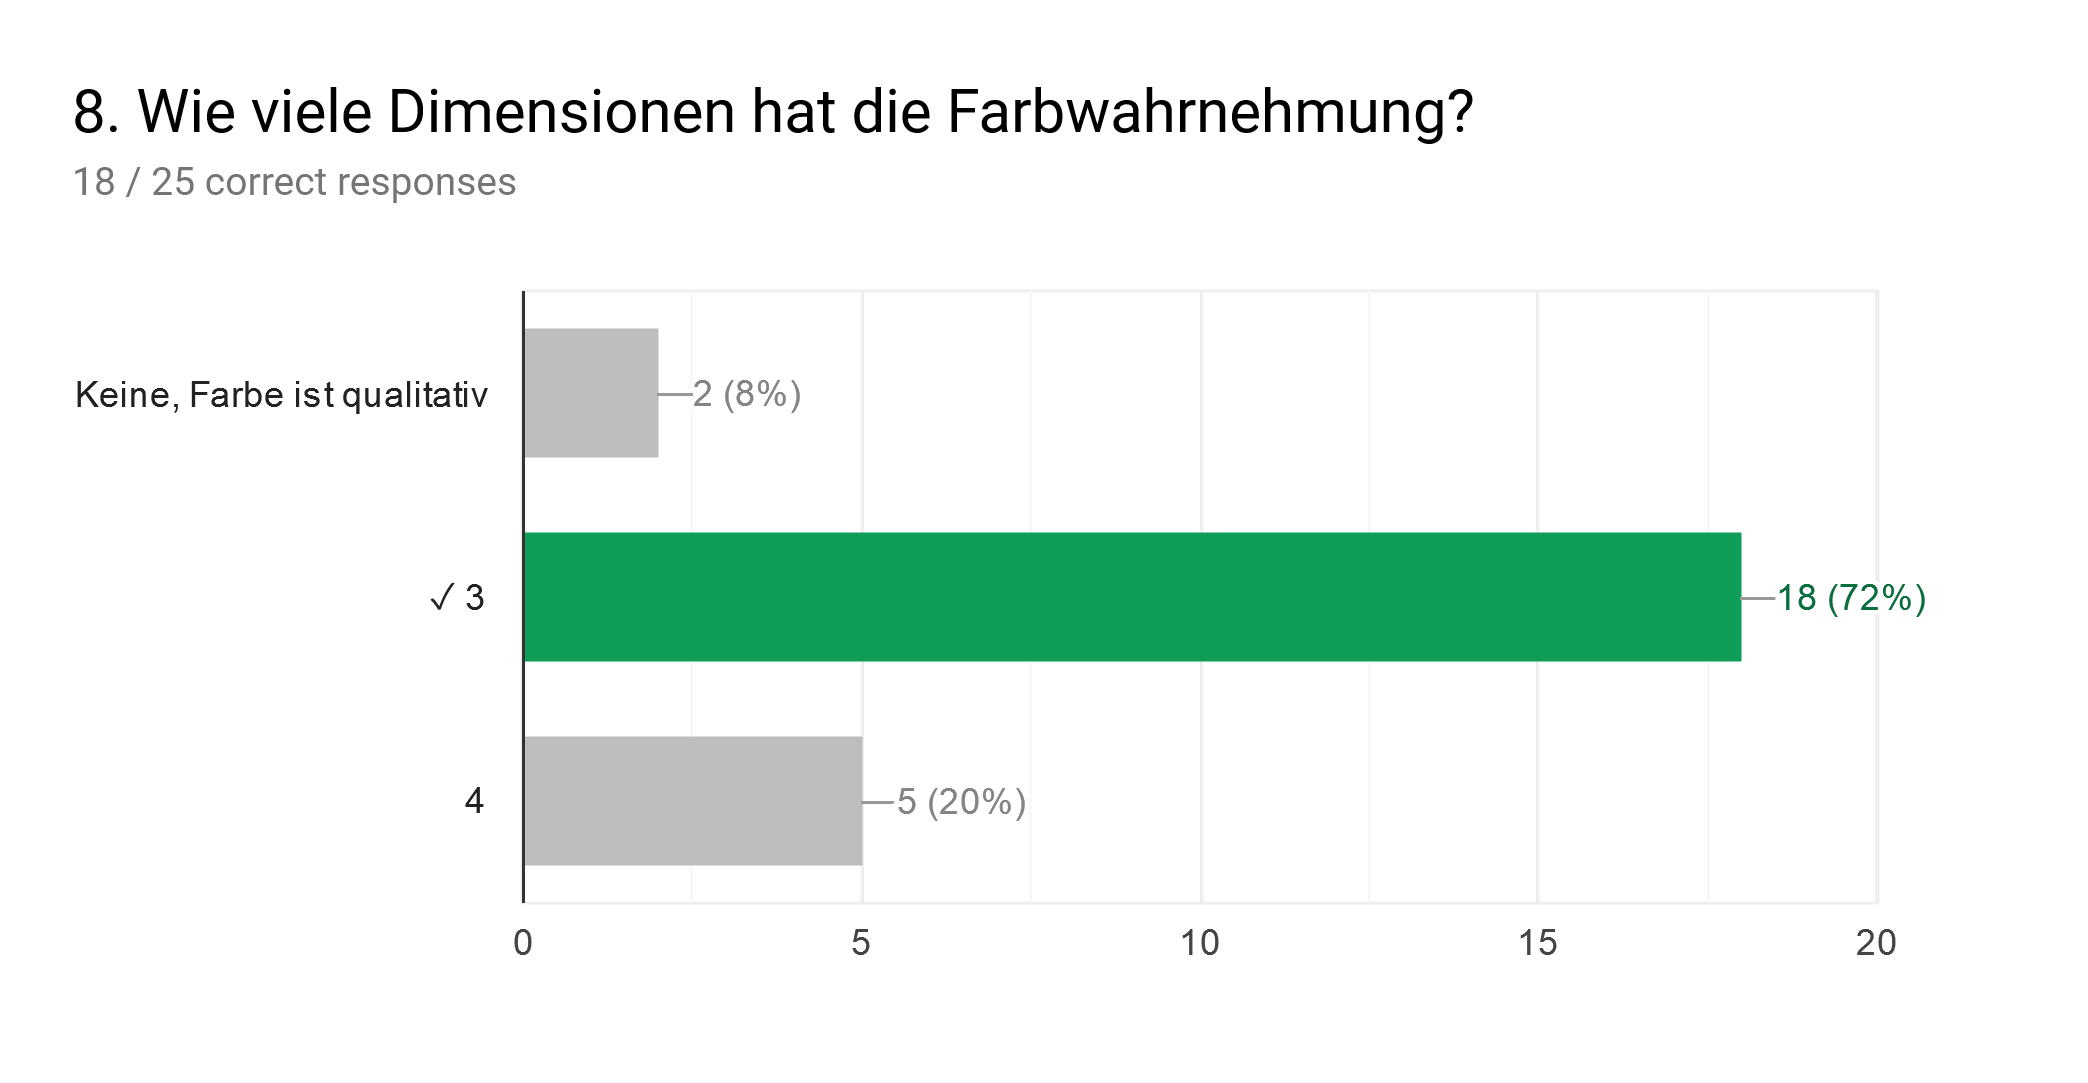 Forms response chart. Question title: 8. Wie viele Dimensionen hat die Farbwahrnehmung?. Number of responses: 18 / 25 correct responses.